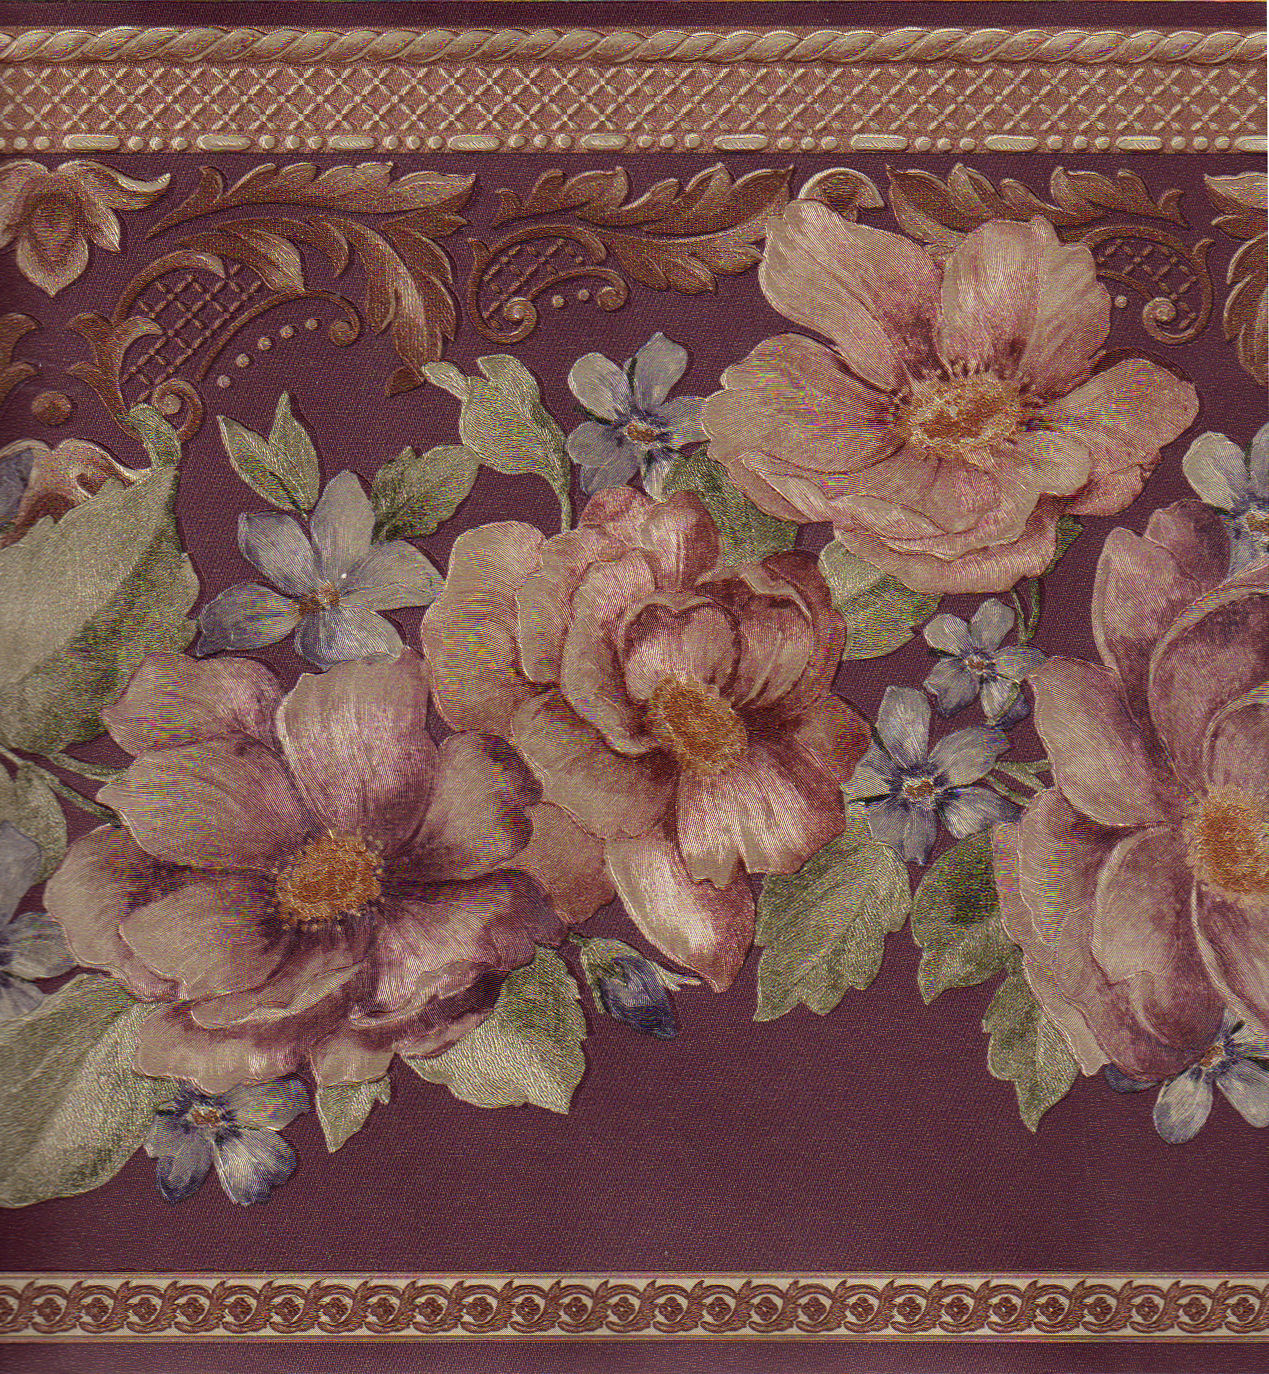 Burgundy Reflective Gold Silk Rose Flower Floral Wall paper Border 1269x1374